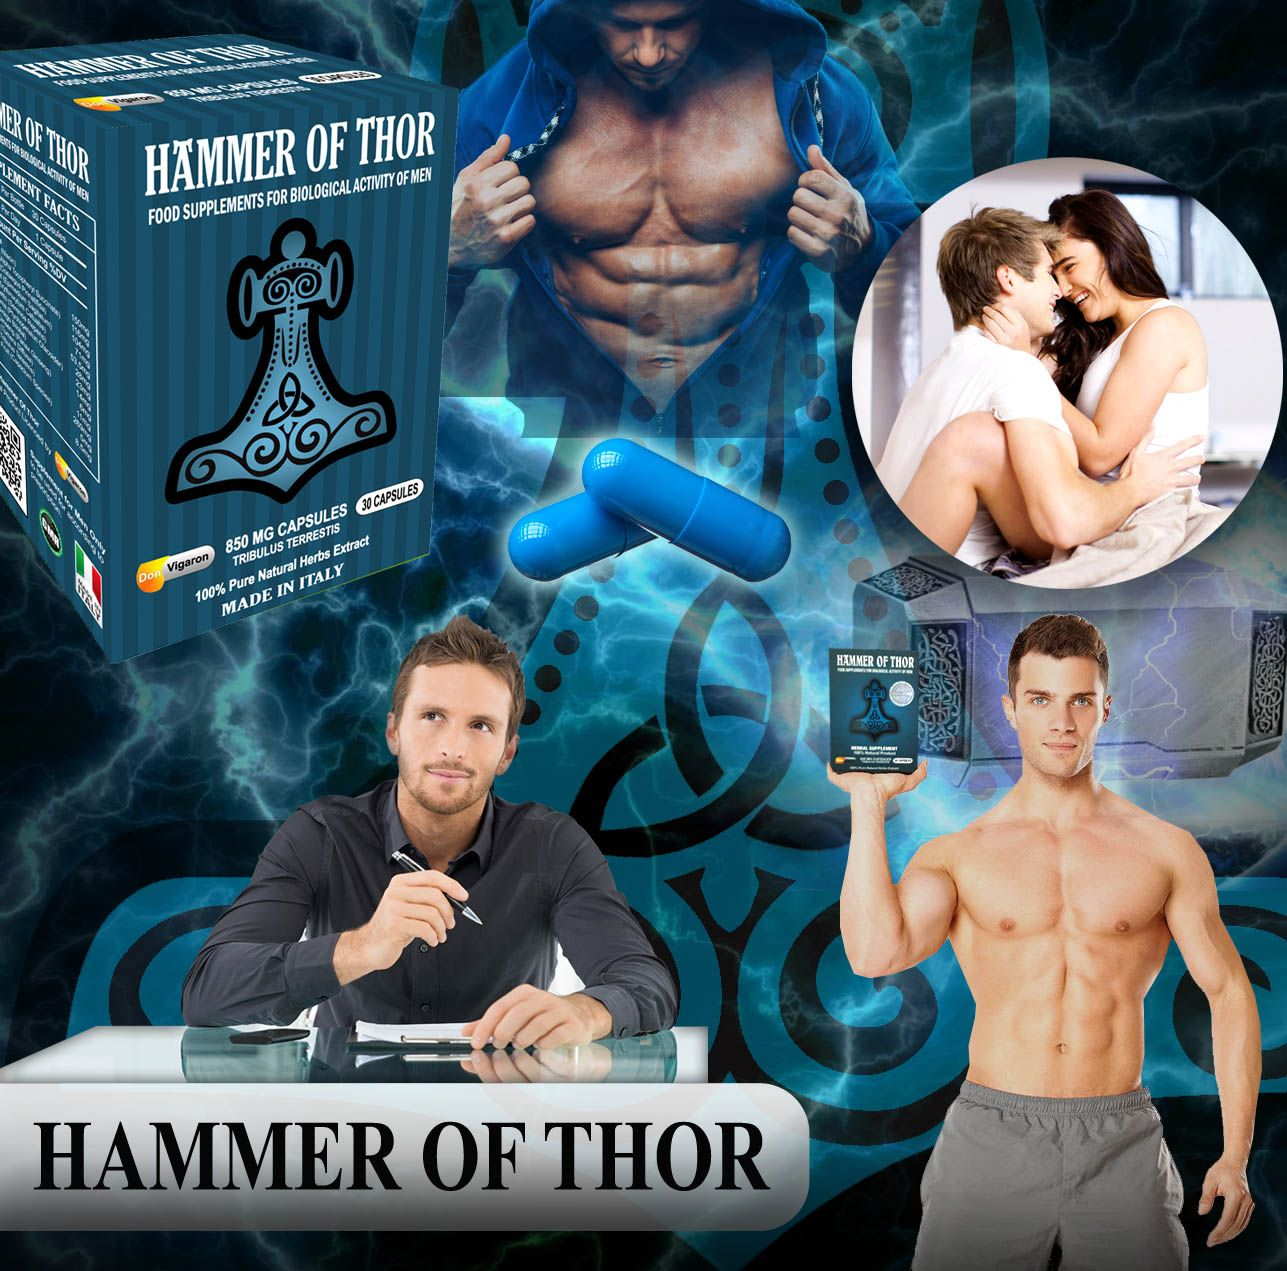 hammer of thor men sexual enhancement available in pakistan now